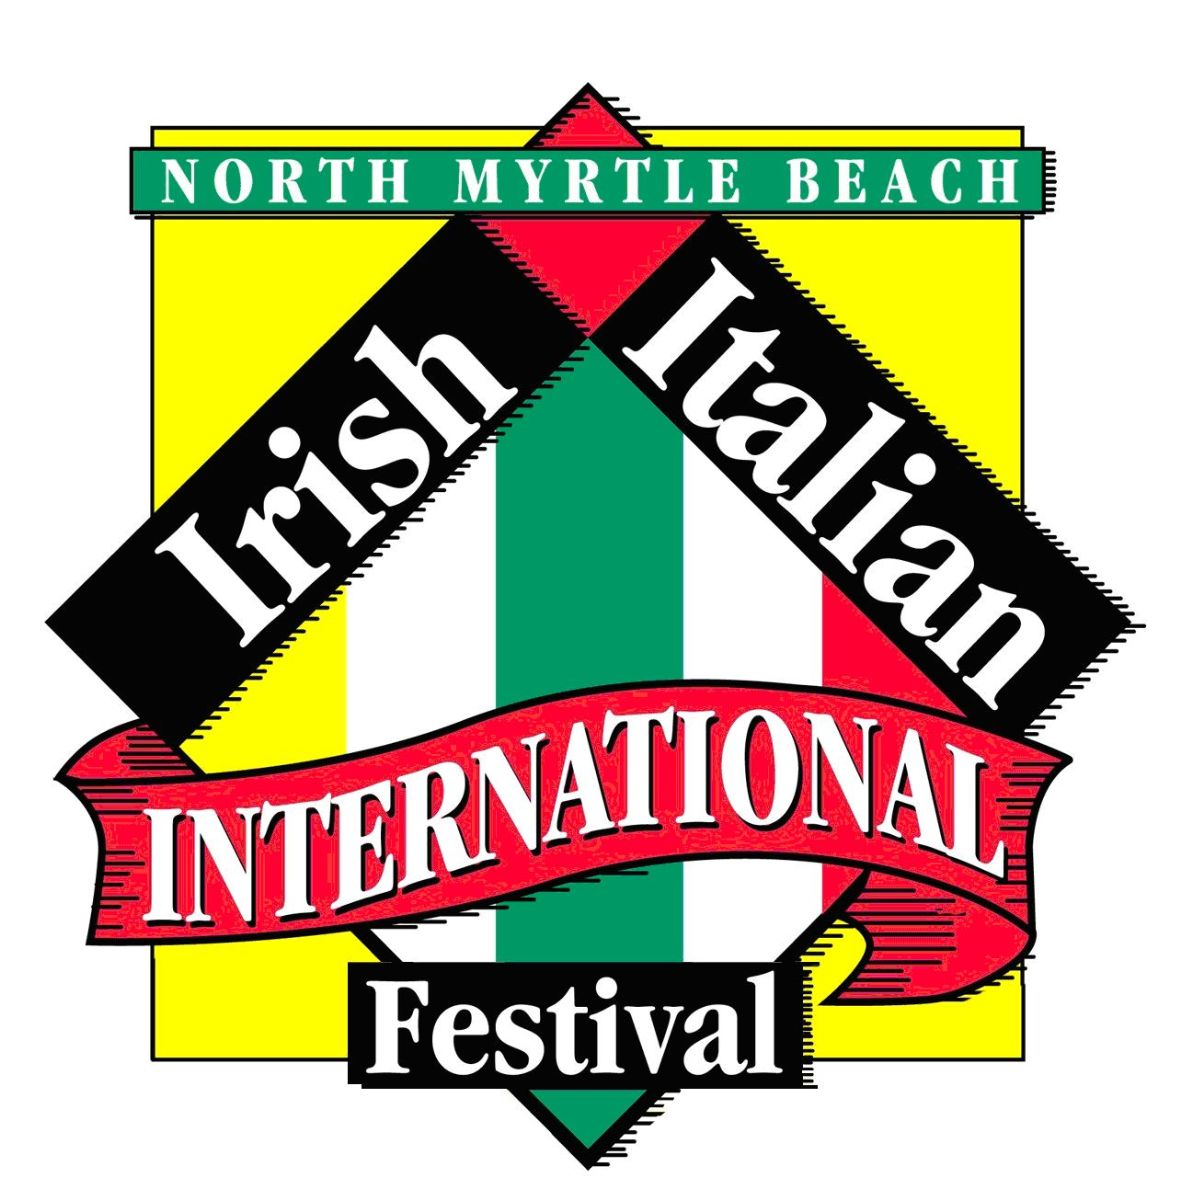 North myrtle beach irish italian festival celebrates culture for Myrtle beach arts and crafts festival